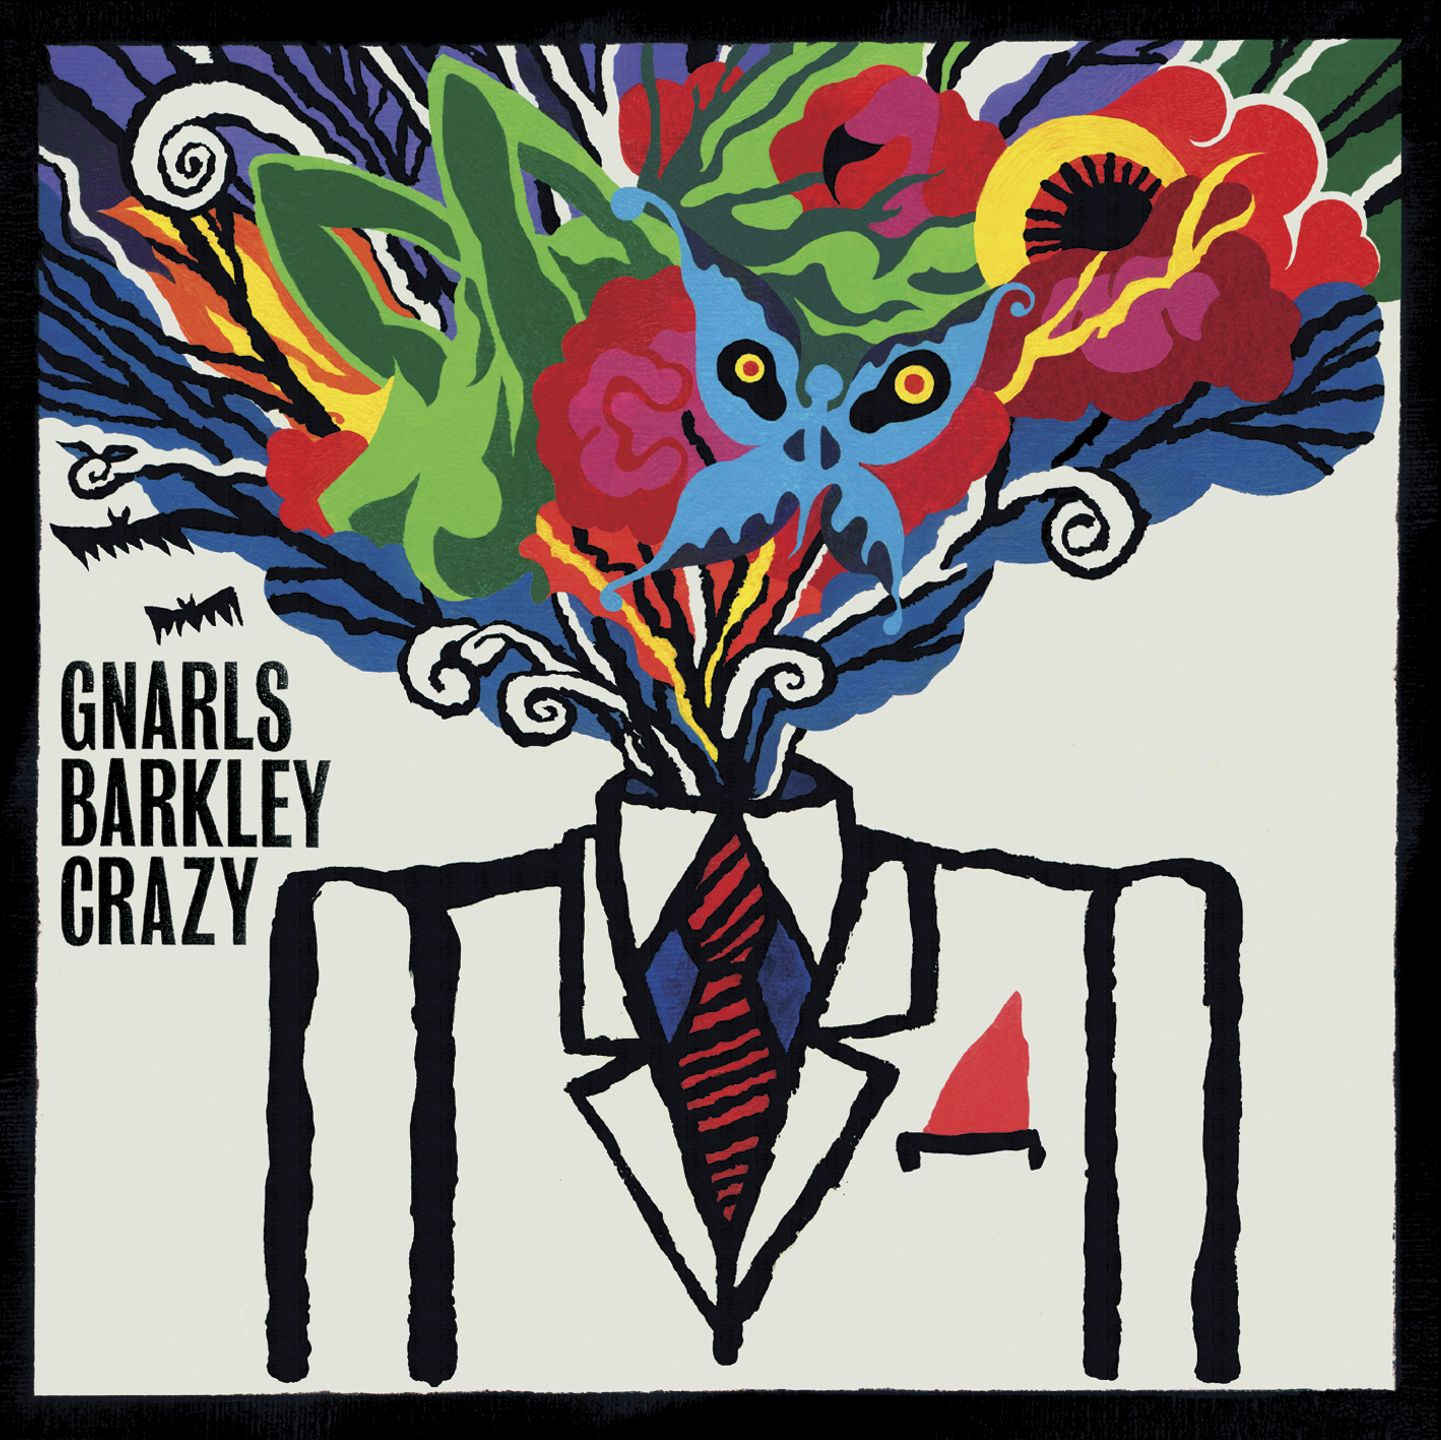 Crazy – Gnarls Barkley